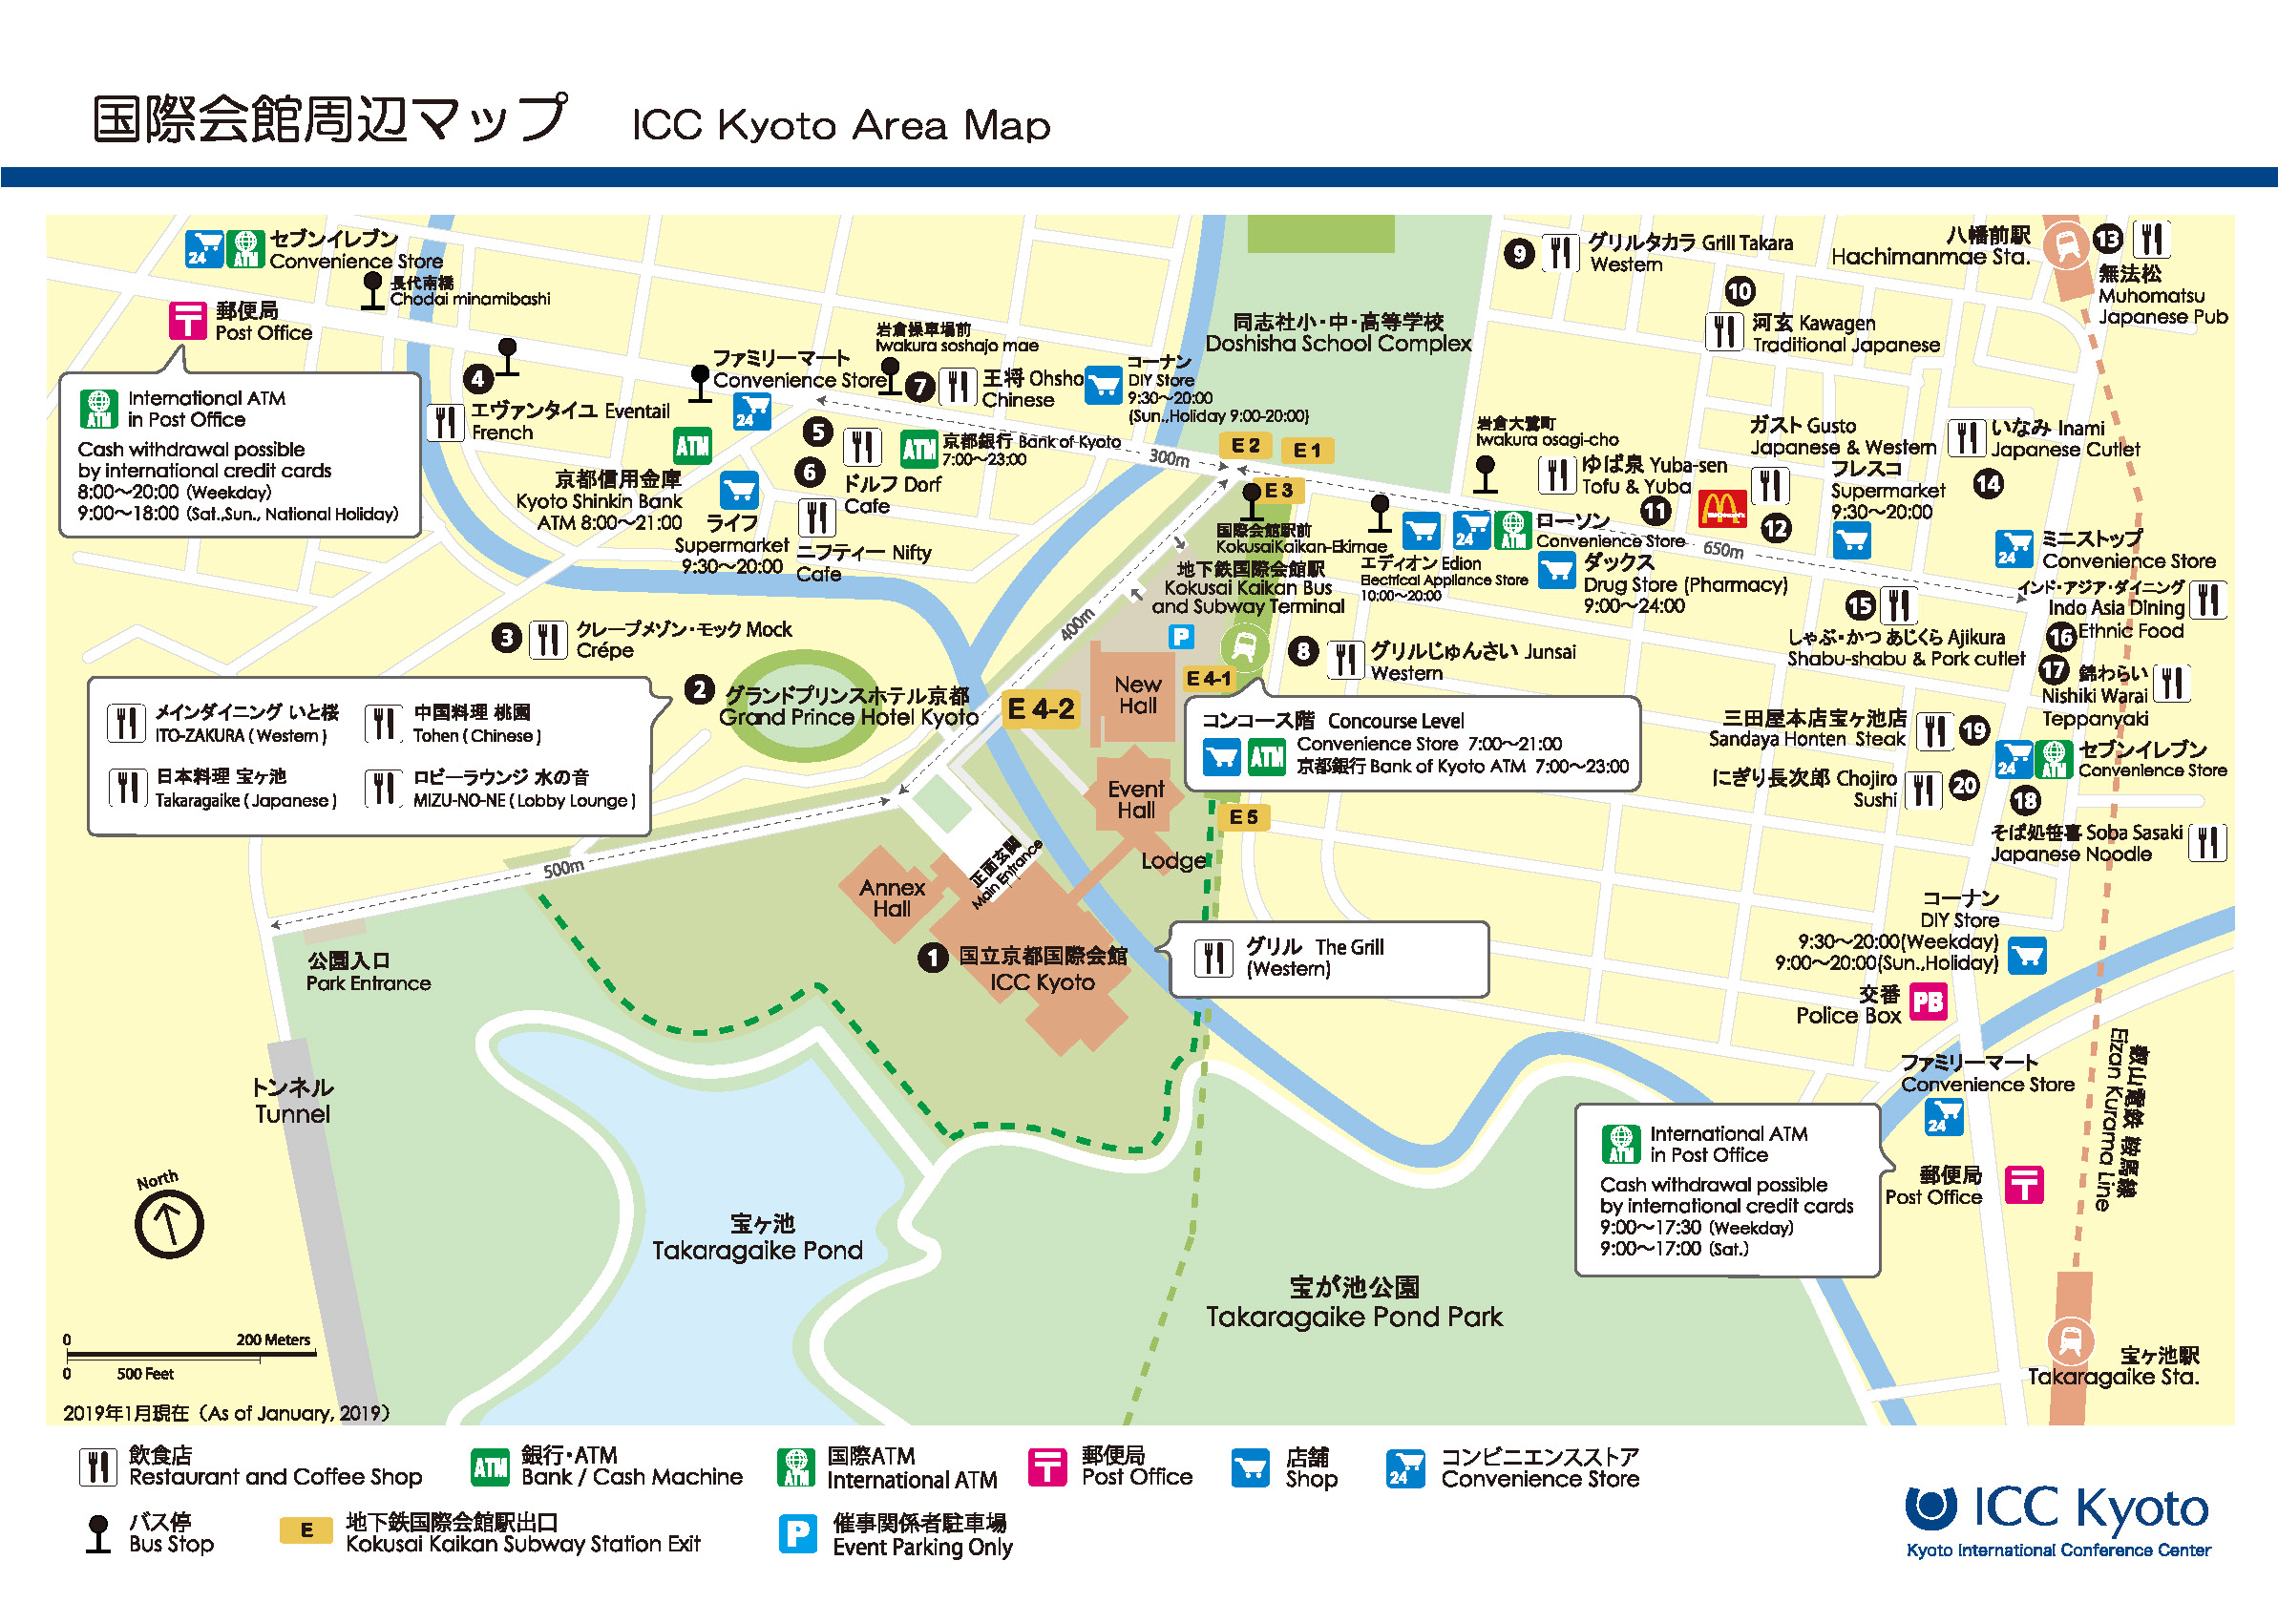 ICC Kyoto Area Map